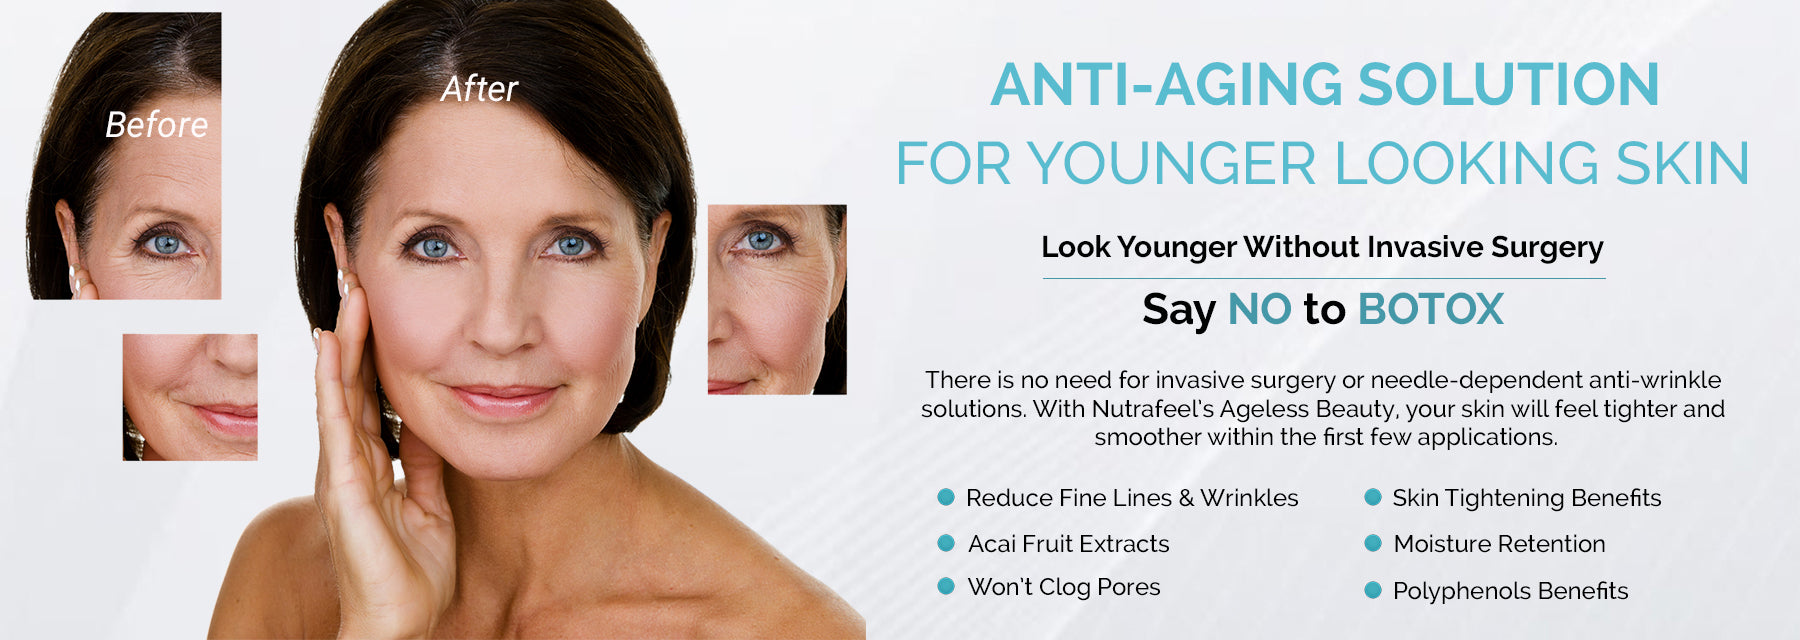 NutraFeel Anti-Aging, Skincare and Beauty Products